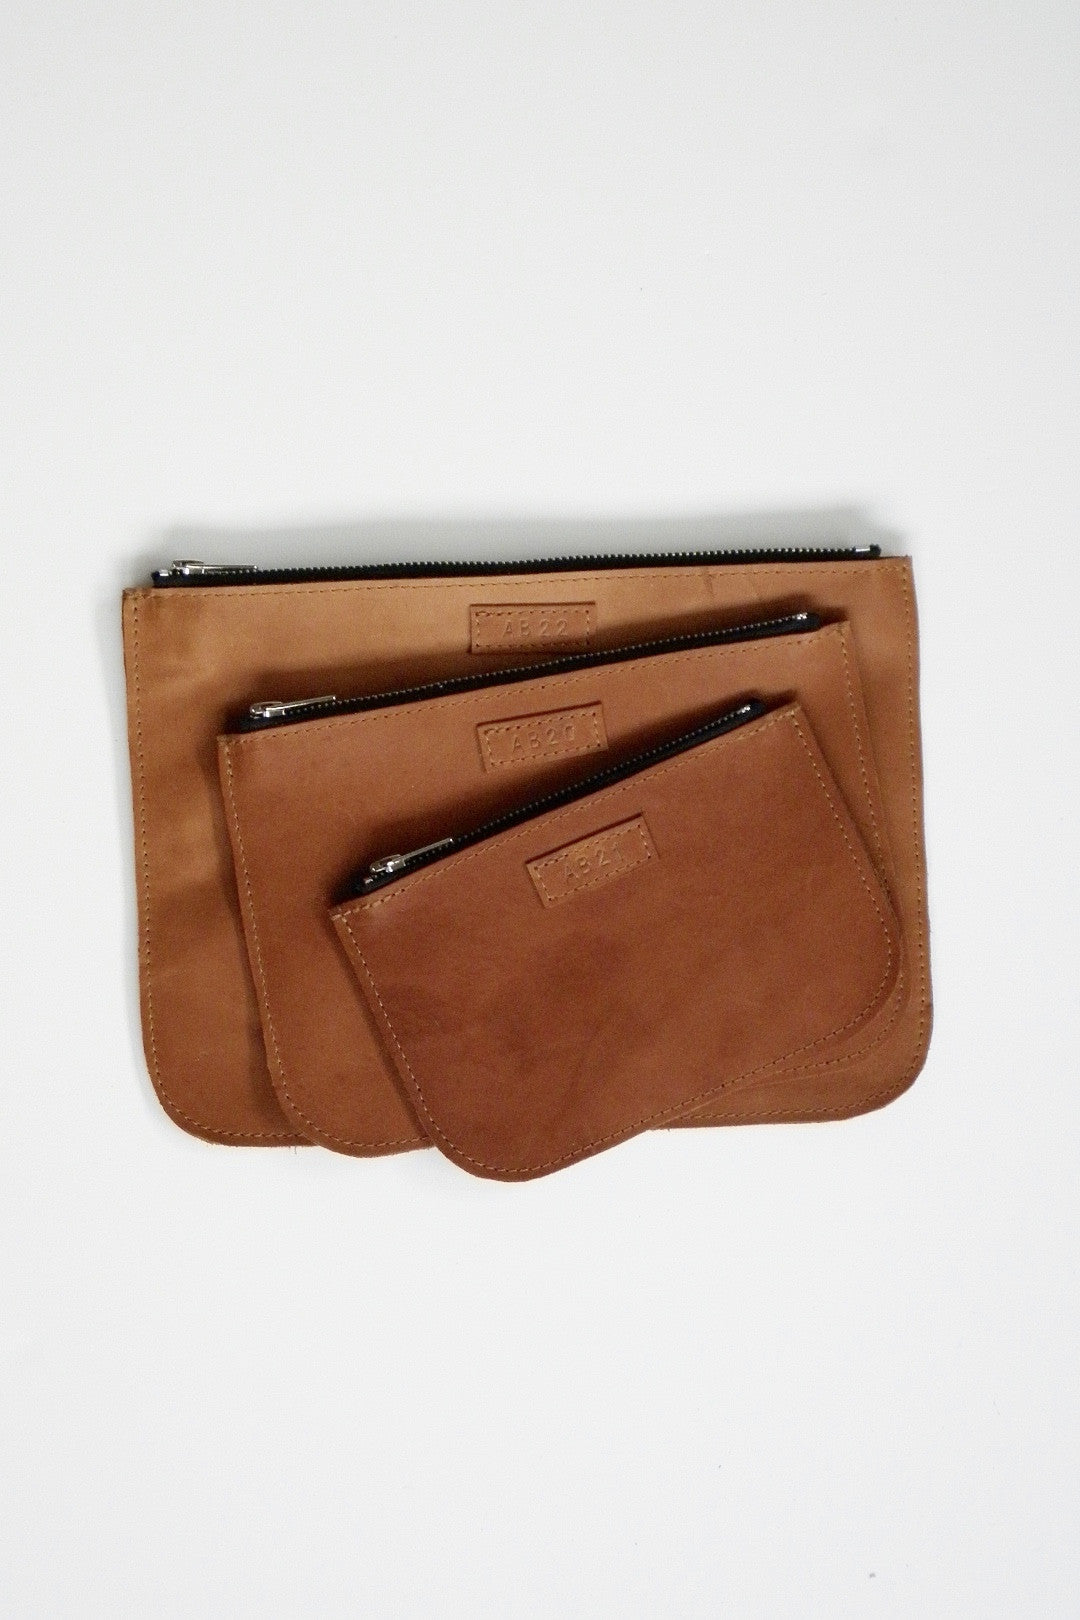 #20 Medium Coupe Pouch / Tobacco